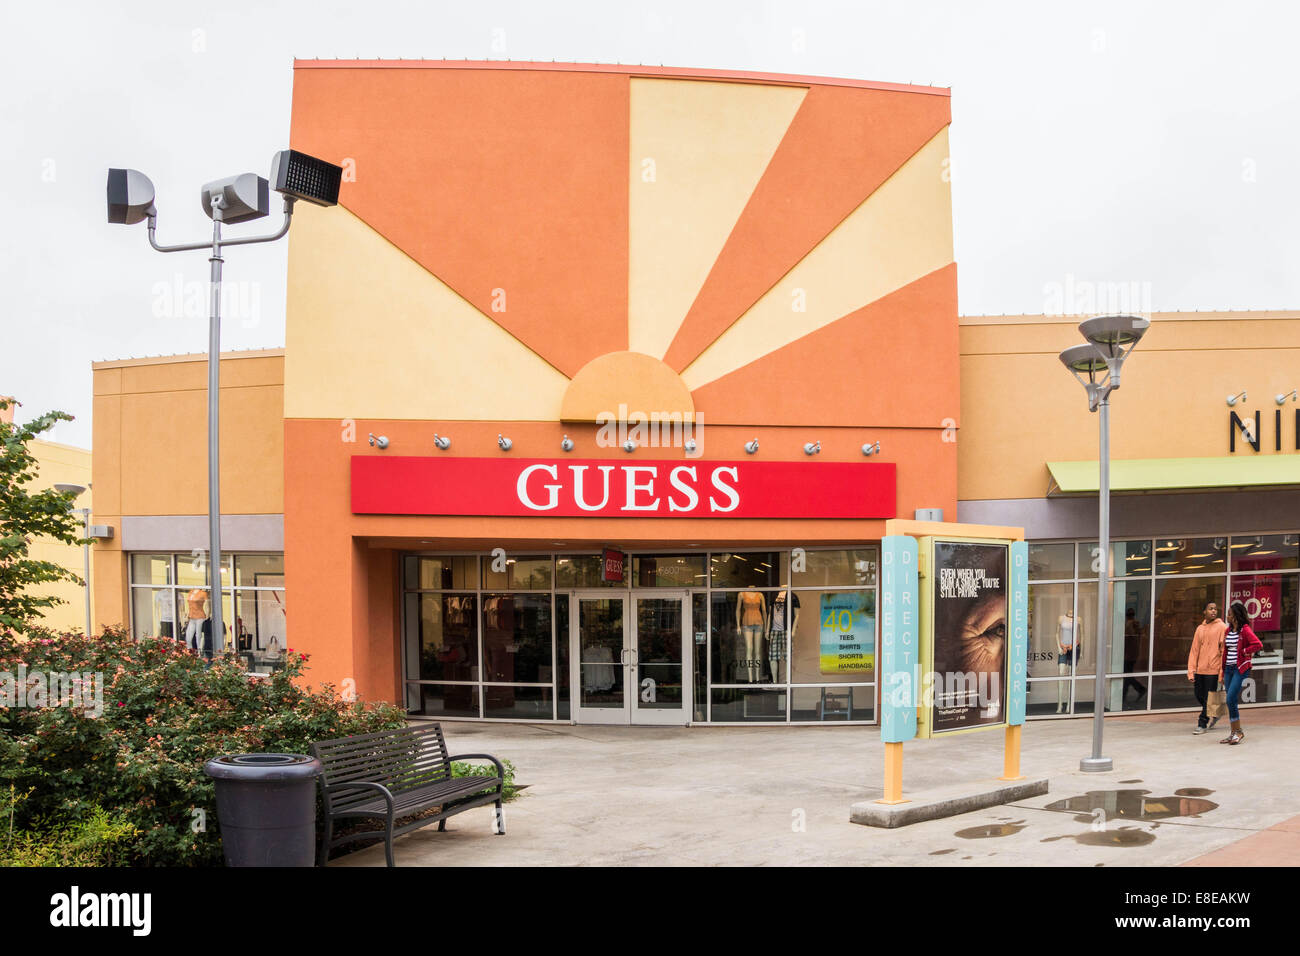 a2f5fa2ae5ea The exterior of a Guess store in The Outlet Shoppes at Oklahoma City ...